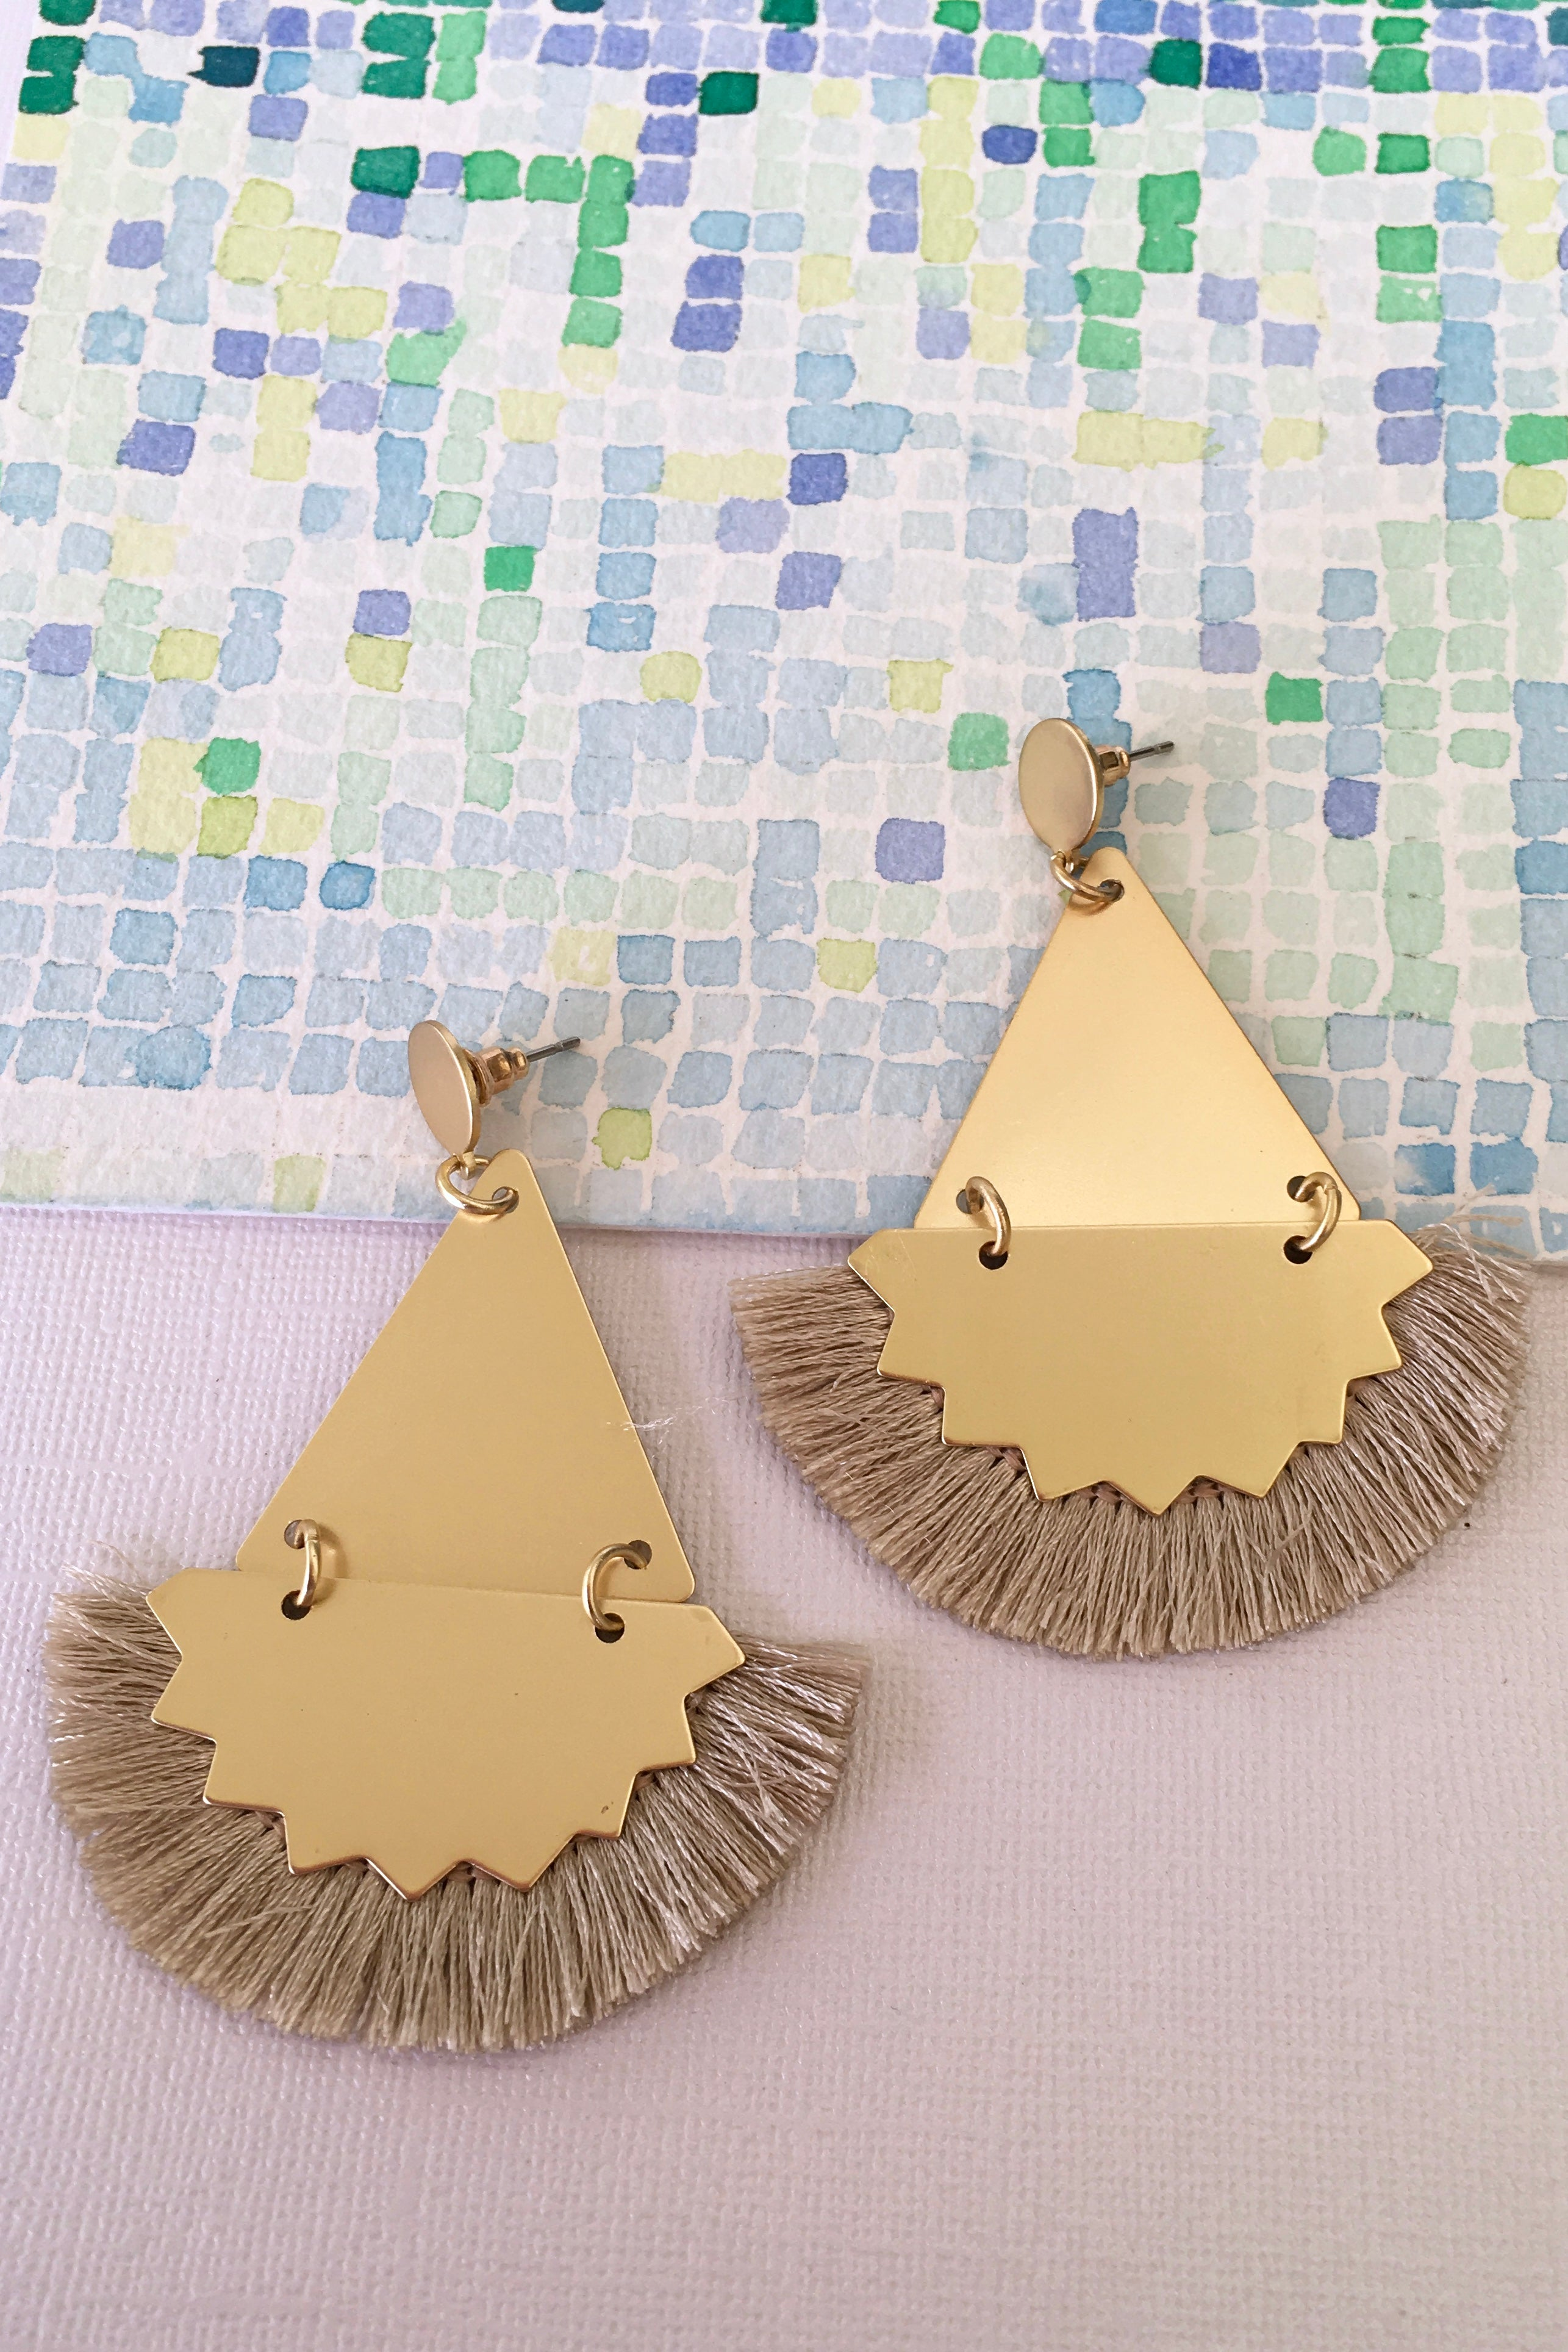 Earrings Y Champagne Ziggy, summer party earrings with fringe detail